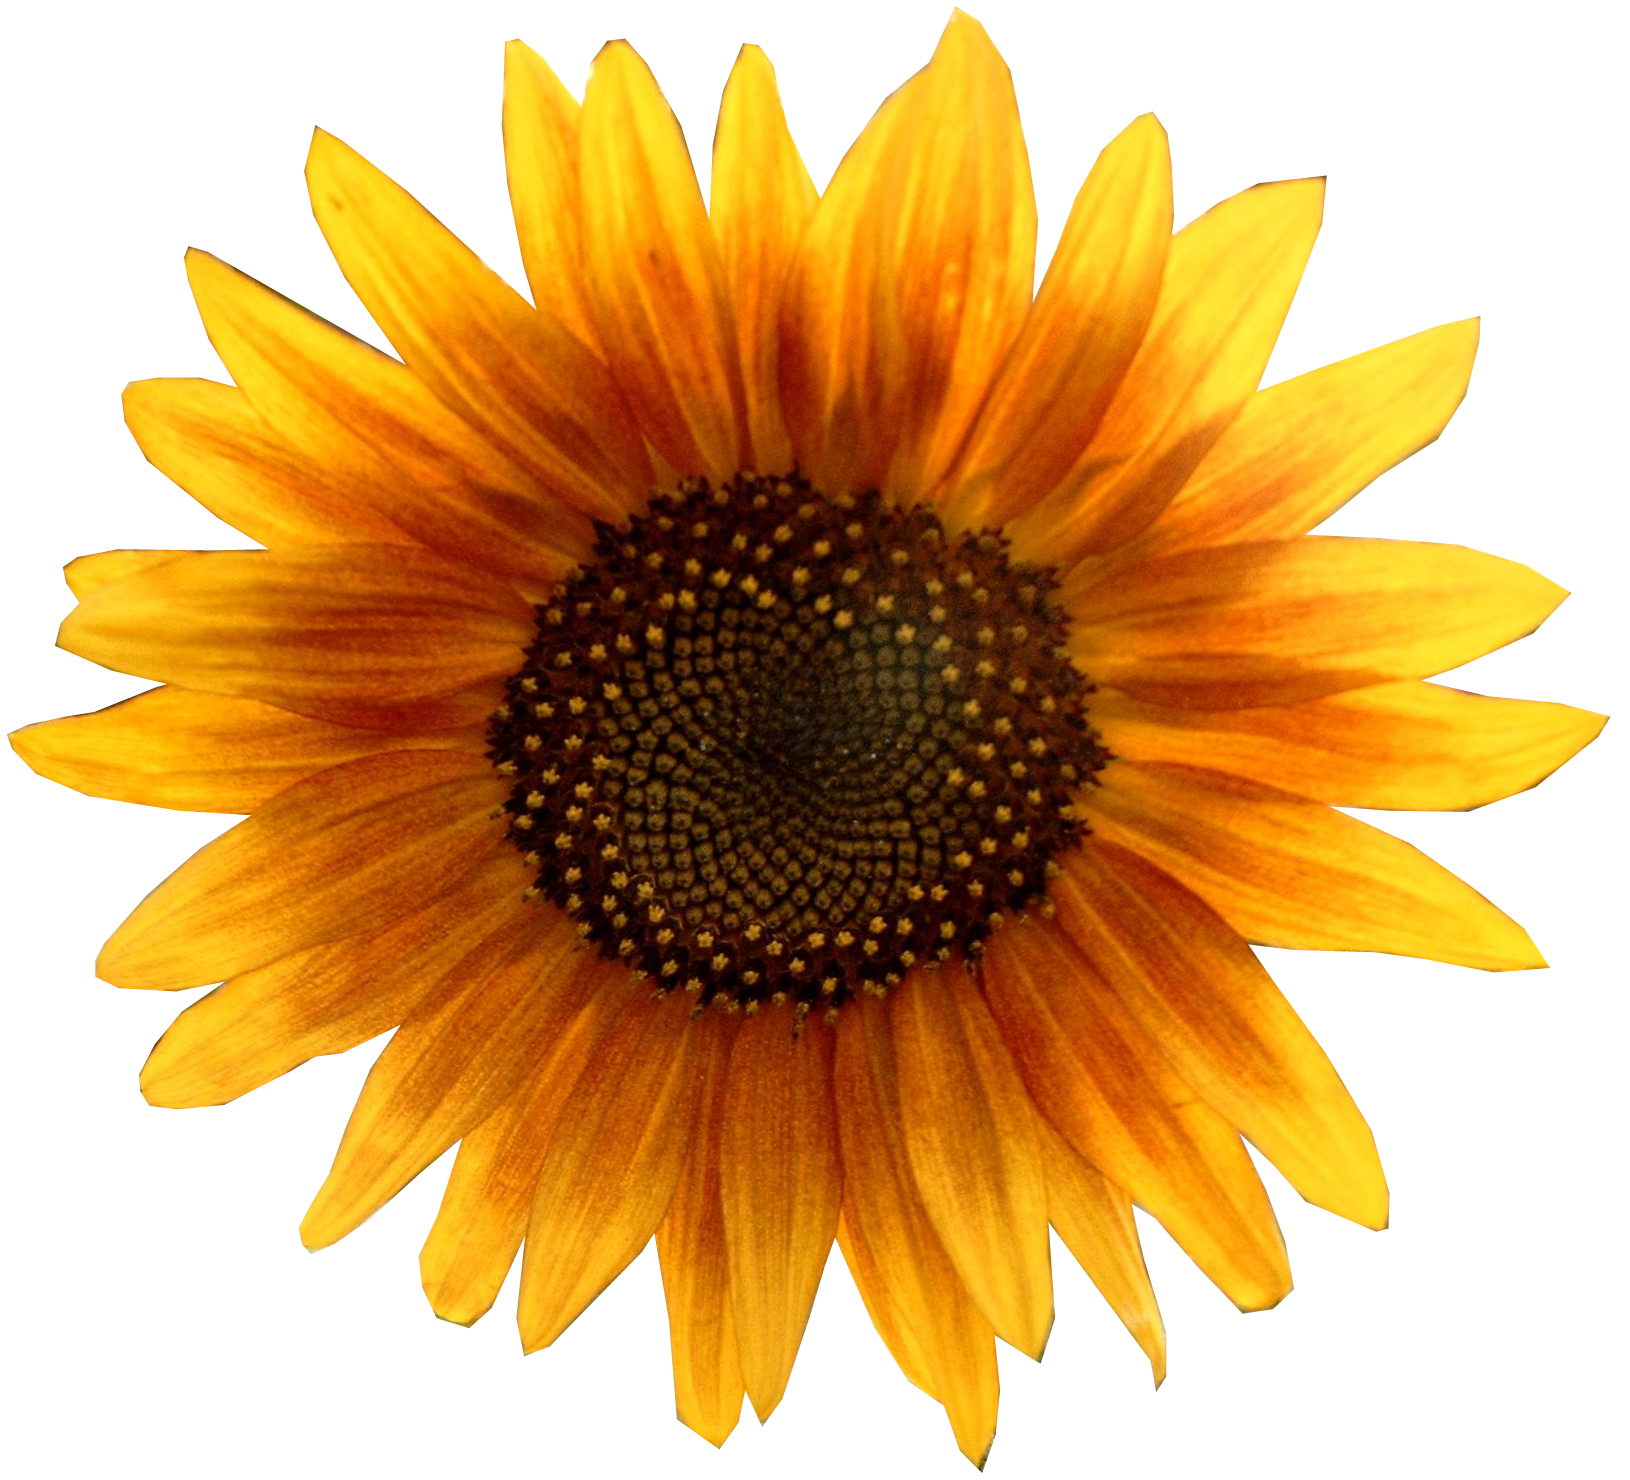 Sunflower png real. Images free download